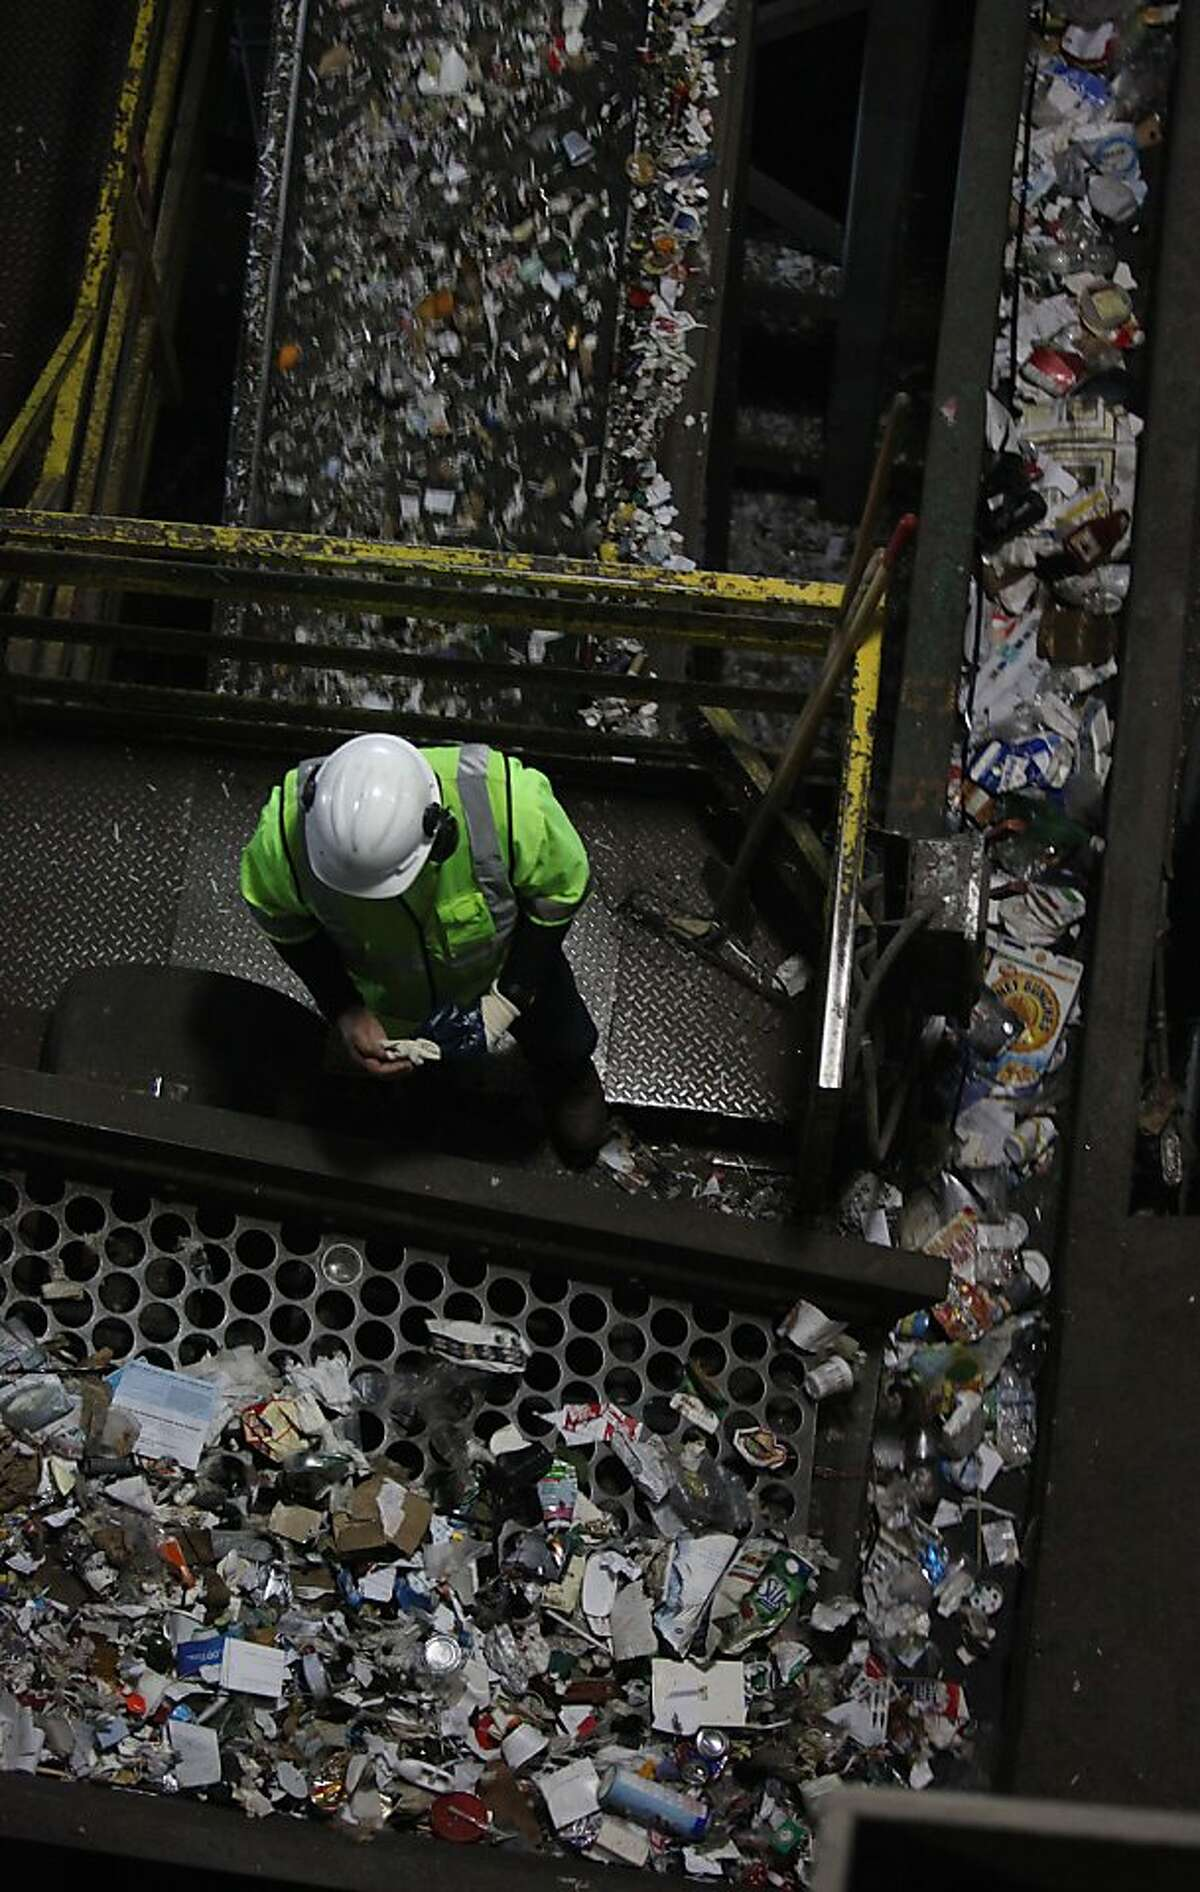 Recology staff sorting paper, cans, and plastics at the Recycle Center @ Pier 96 in San Francisco, California, on Wednesday, January 2, 2013.